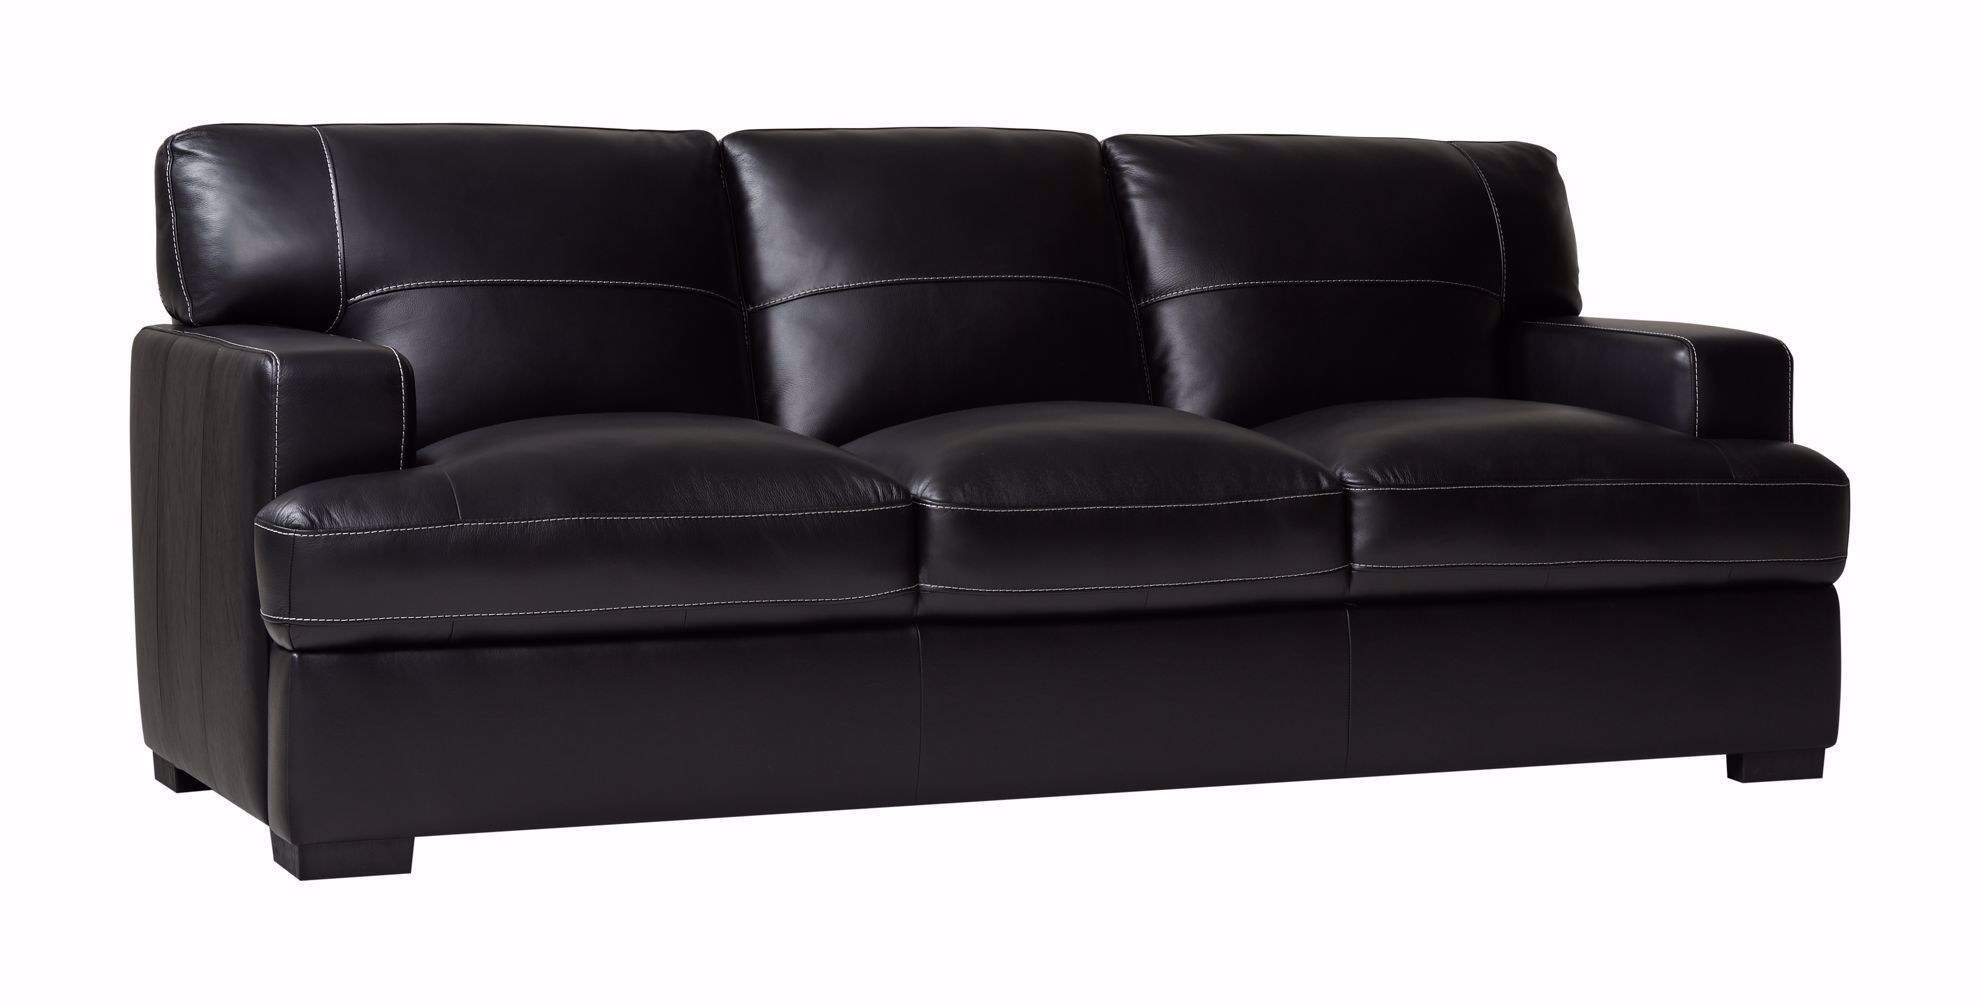 Picture of 3302 Black Sofa